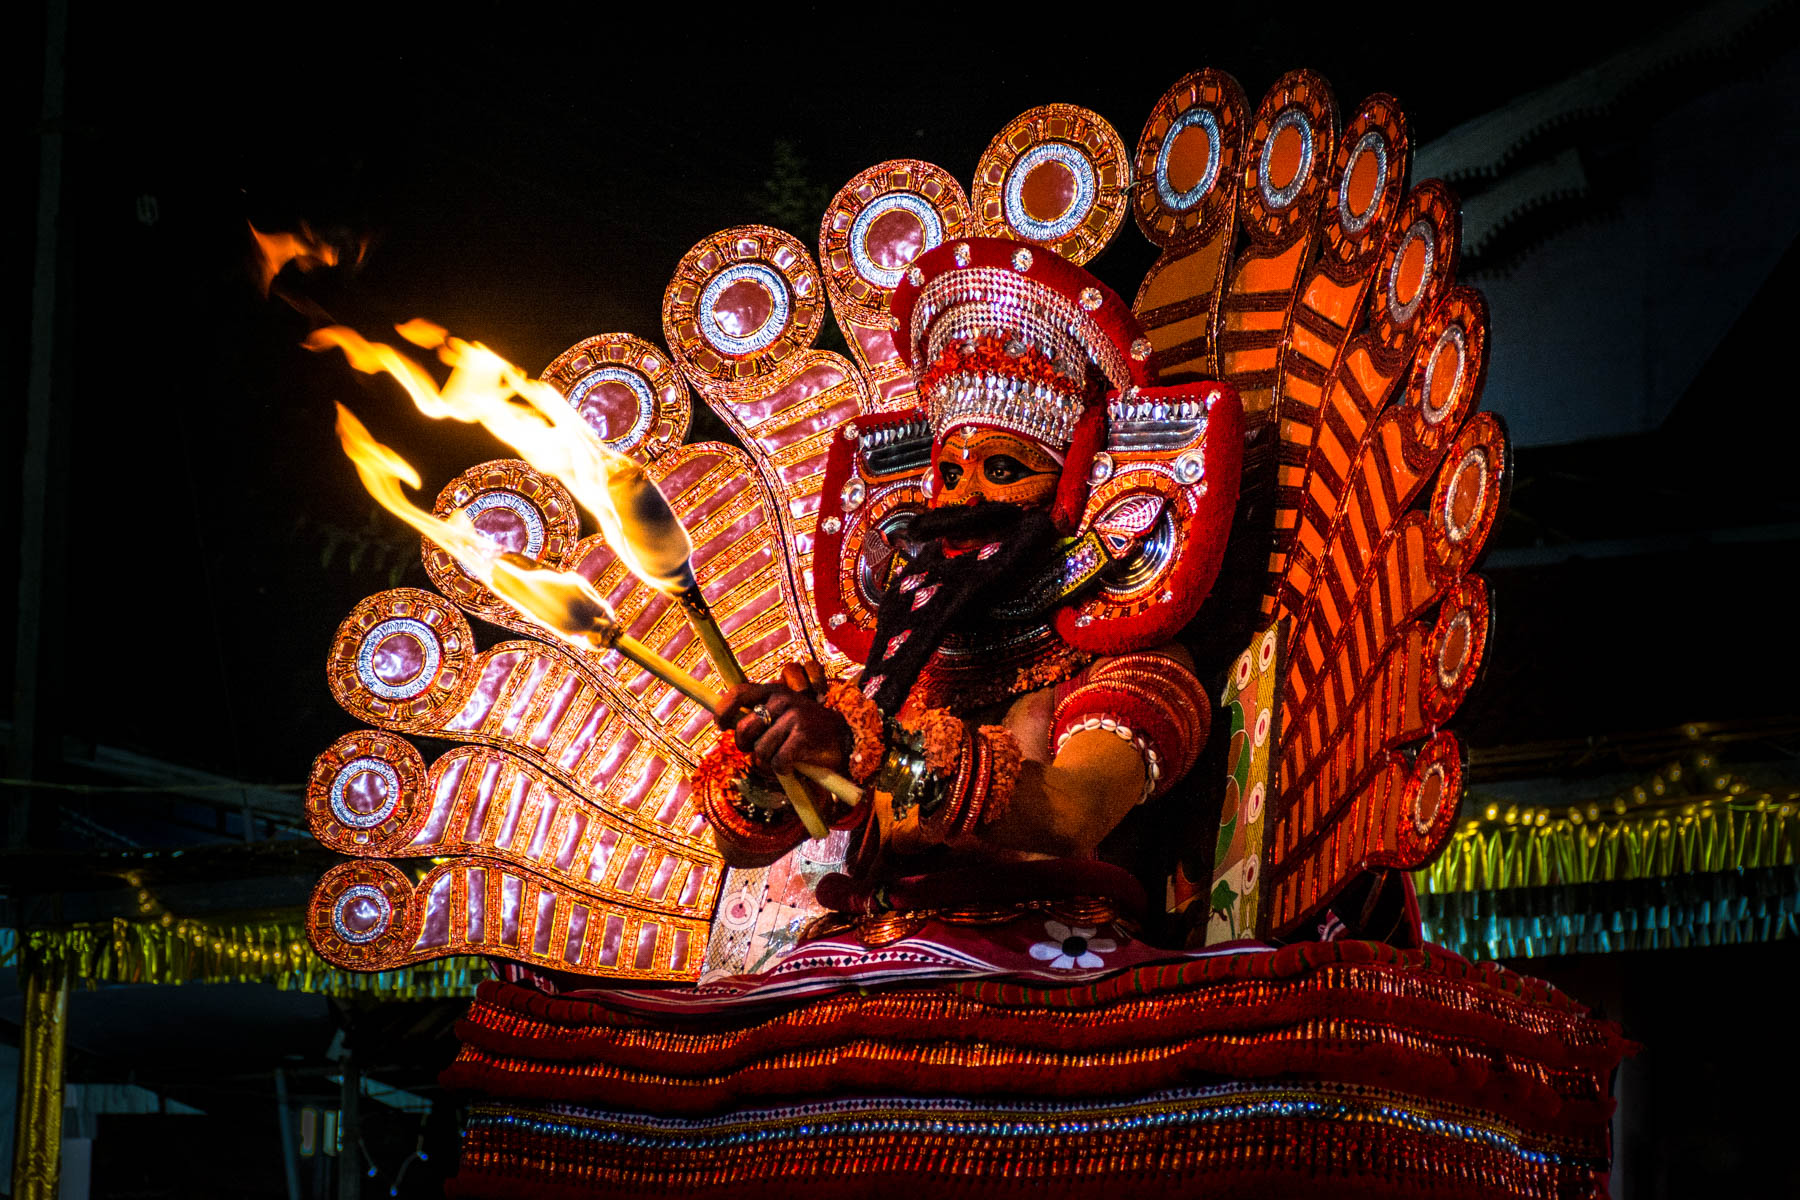 A Theyyam performer dancing in full trance